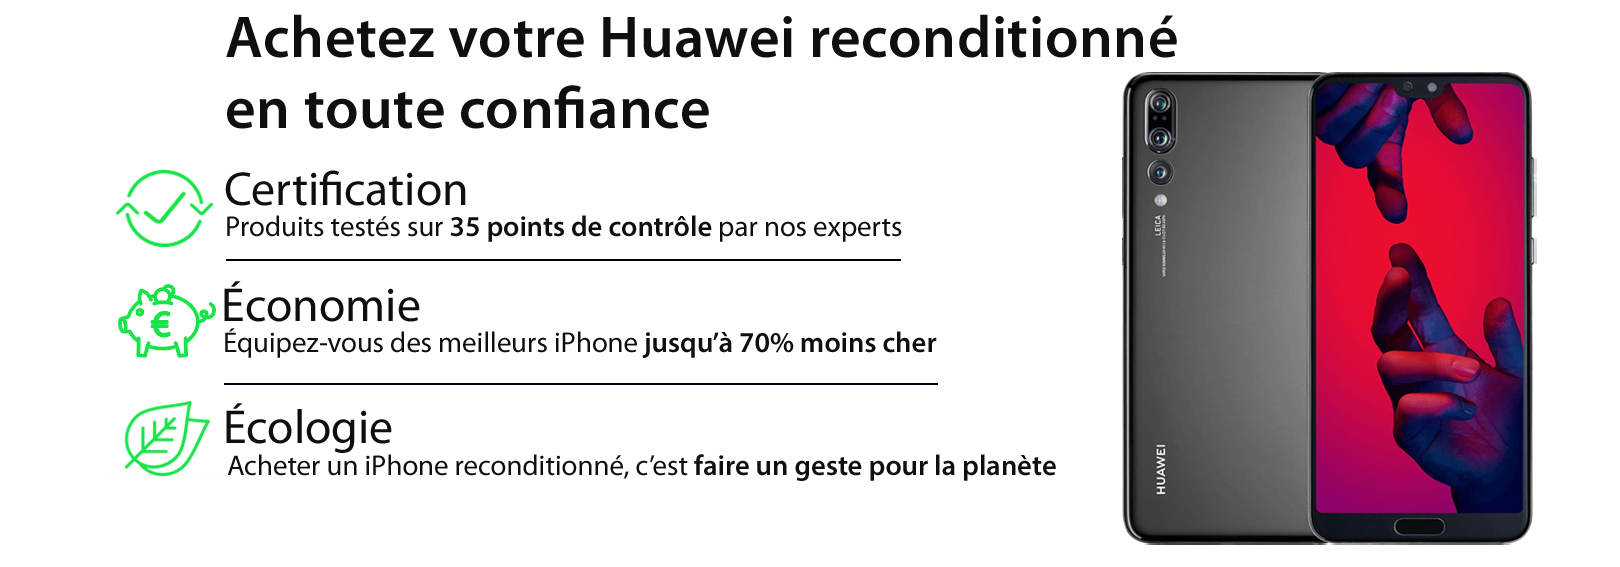 Huawei reconditionné